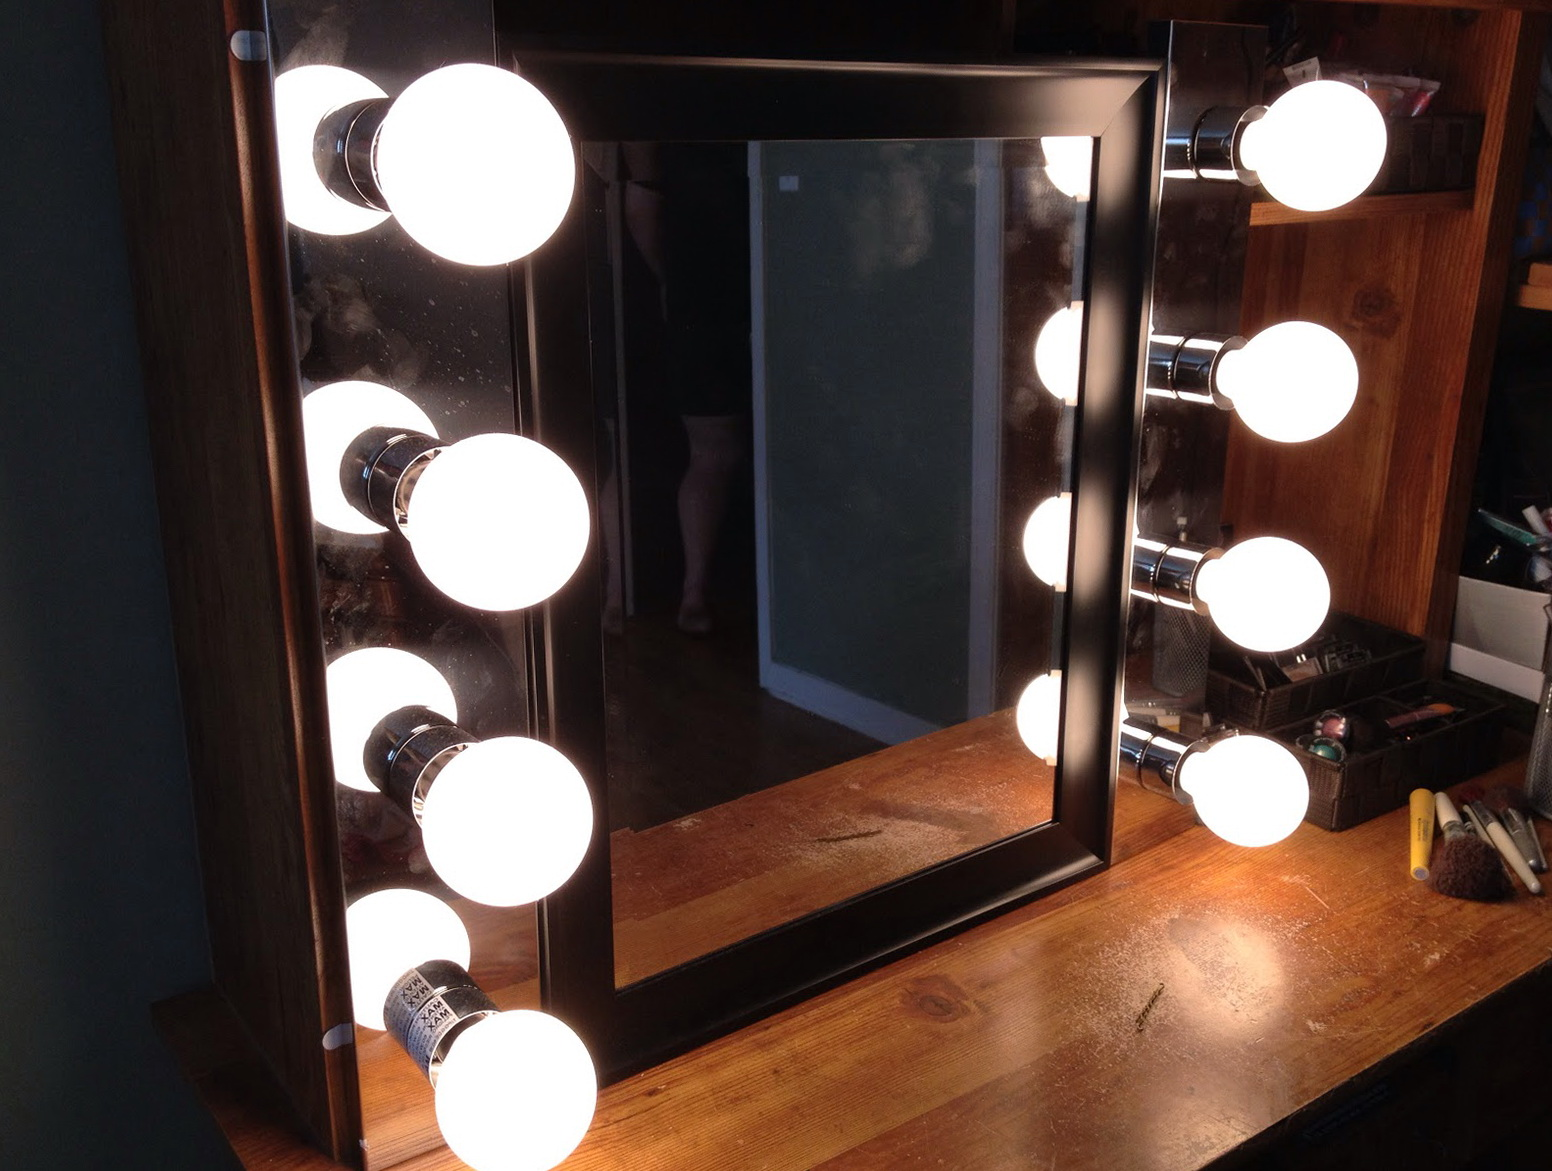 Makeup Vanity Light Bulbs : Vanity Mirror With Light Bulbs Home Design Ideas